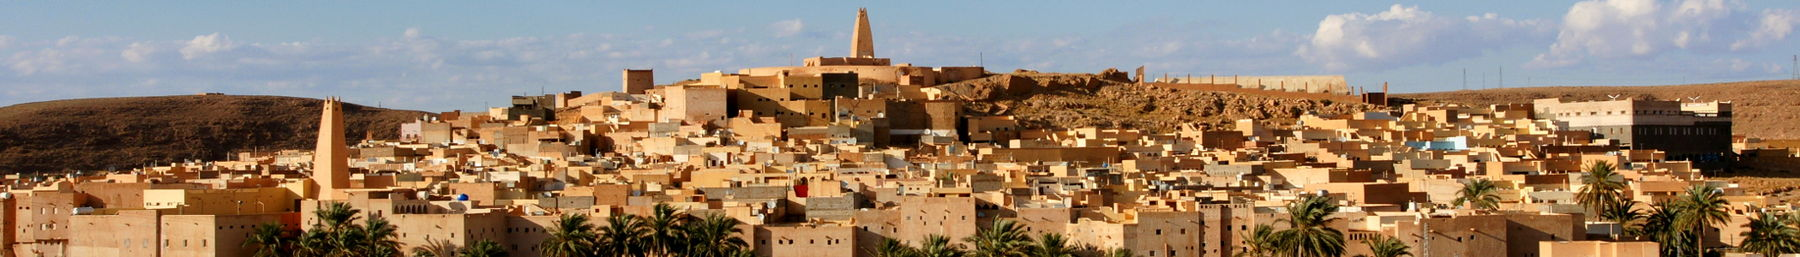 Ghardaïa banner city view.jpg